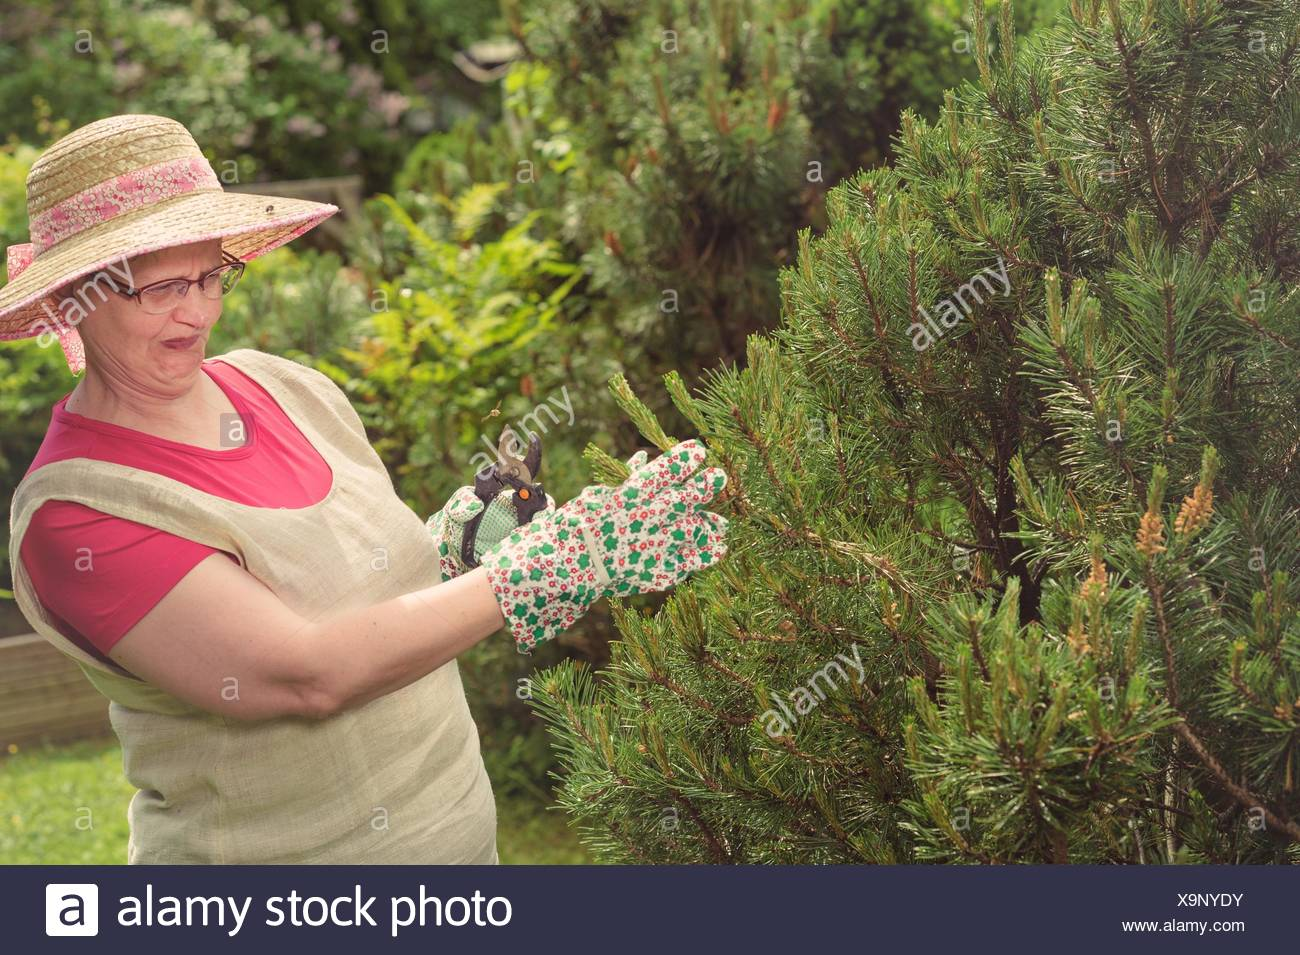 Mature woman and the wasp in the garden, cross processed image. - Stock Image